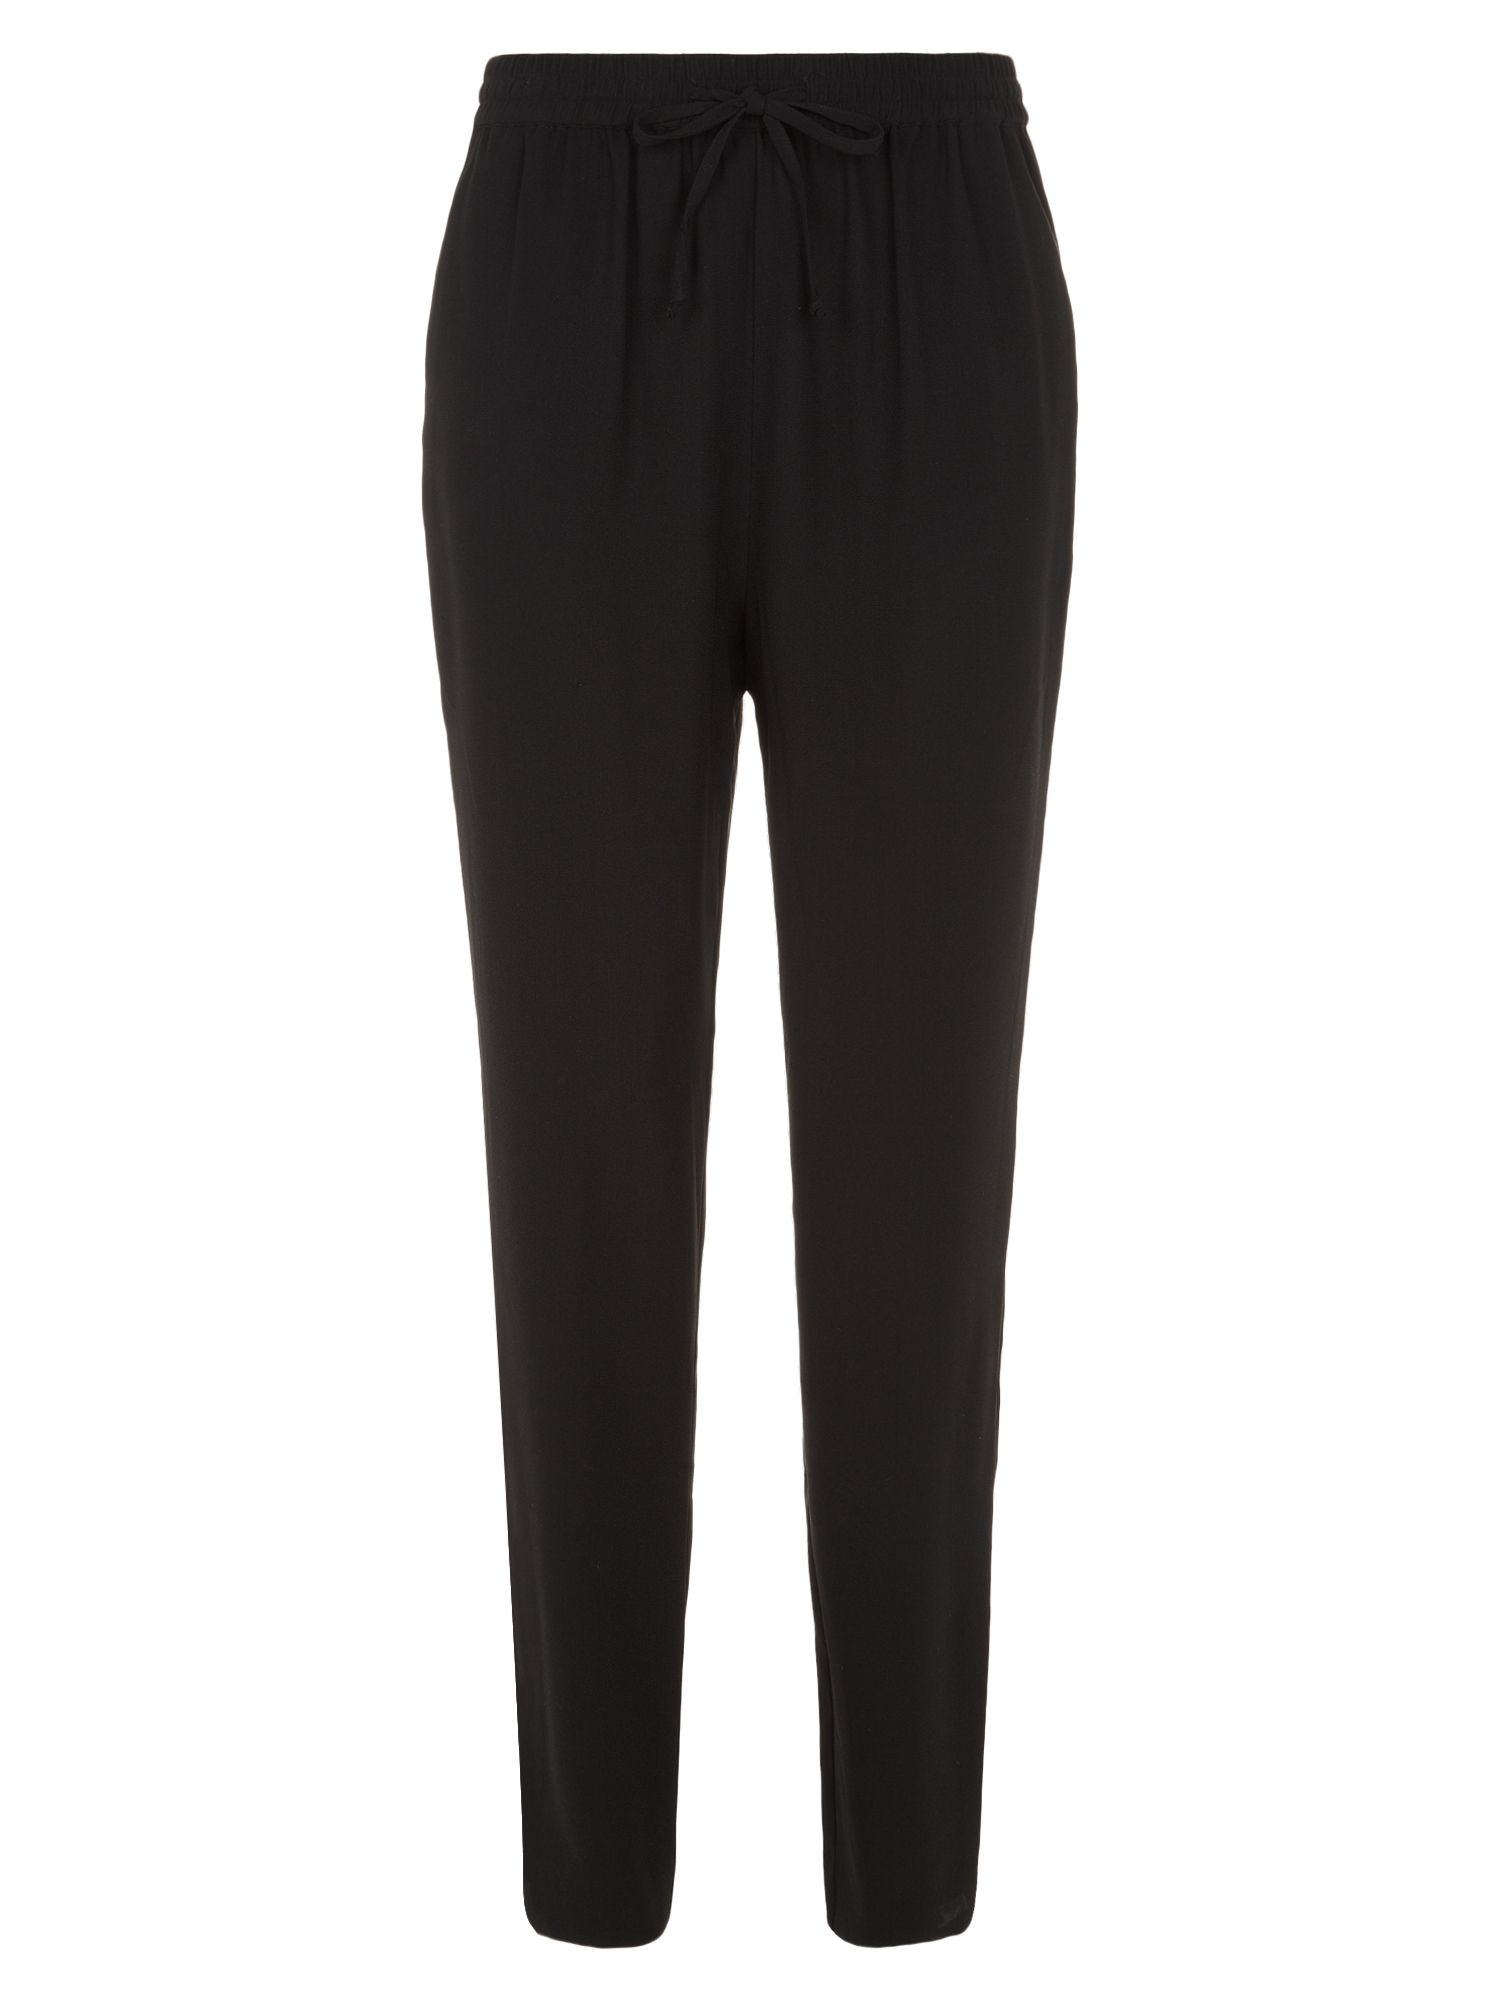 Tapered leg trouser